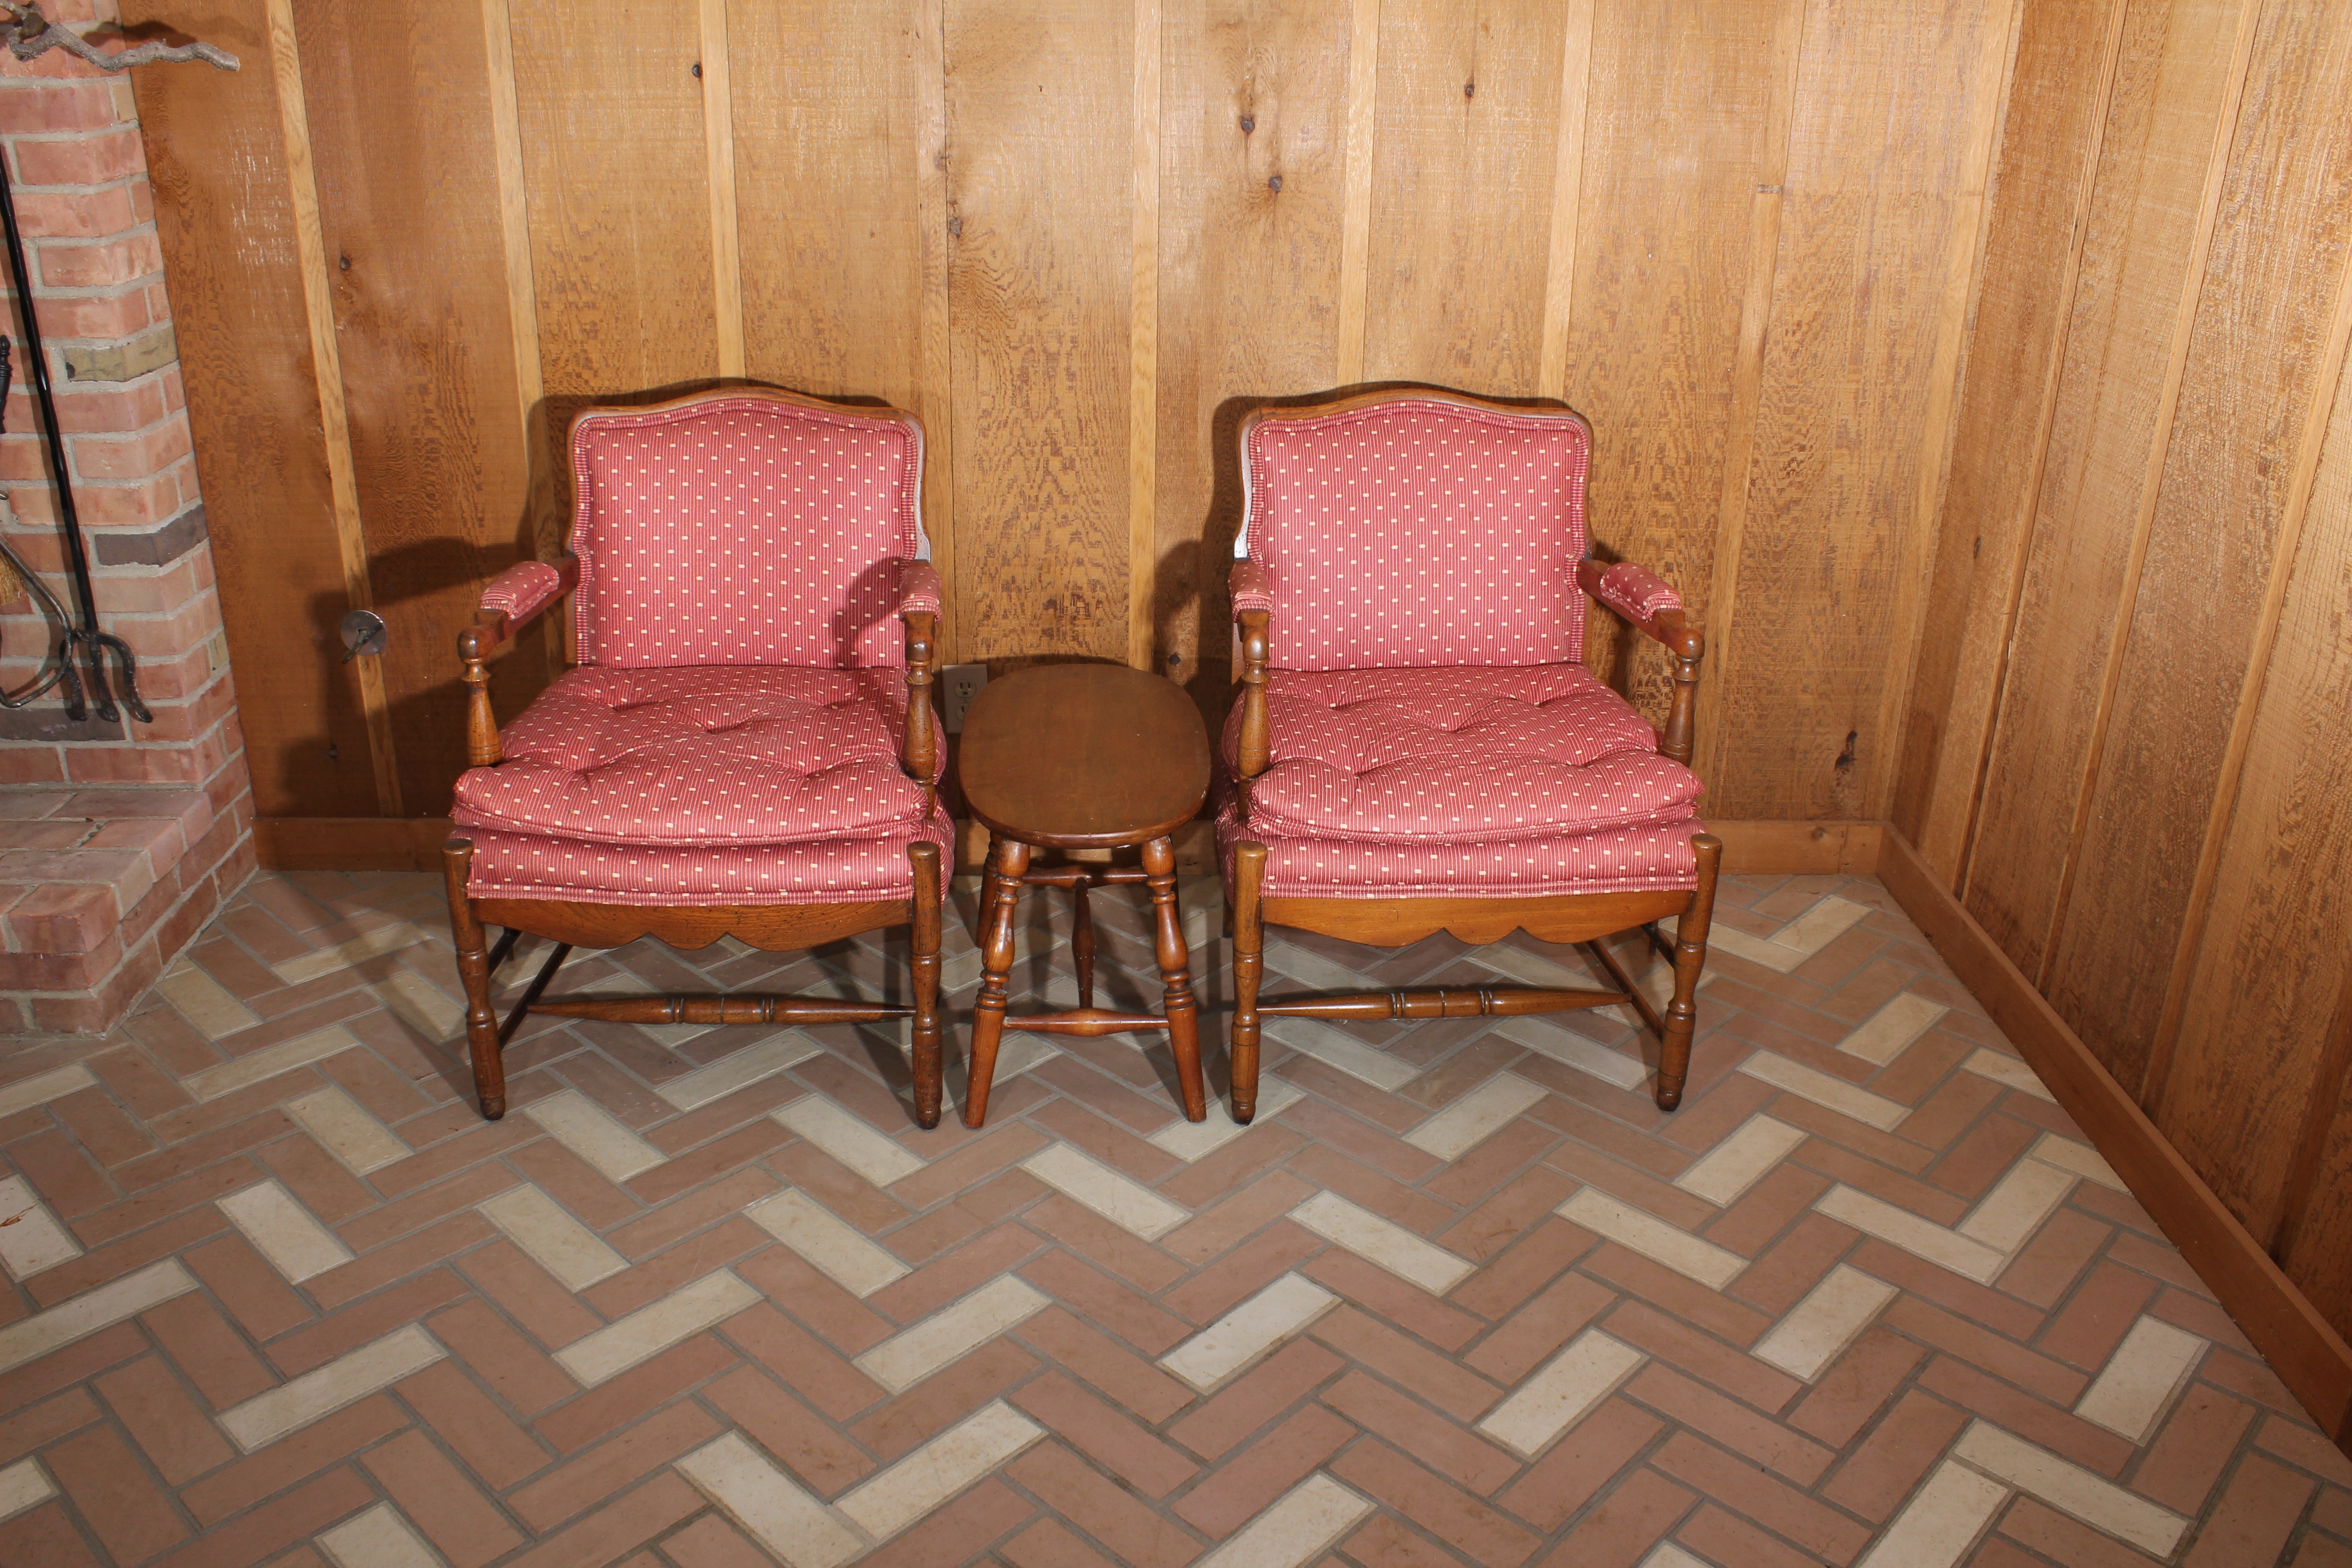 Pair of Vintage Tufted Upholstered Armchairs and Side Table